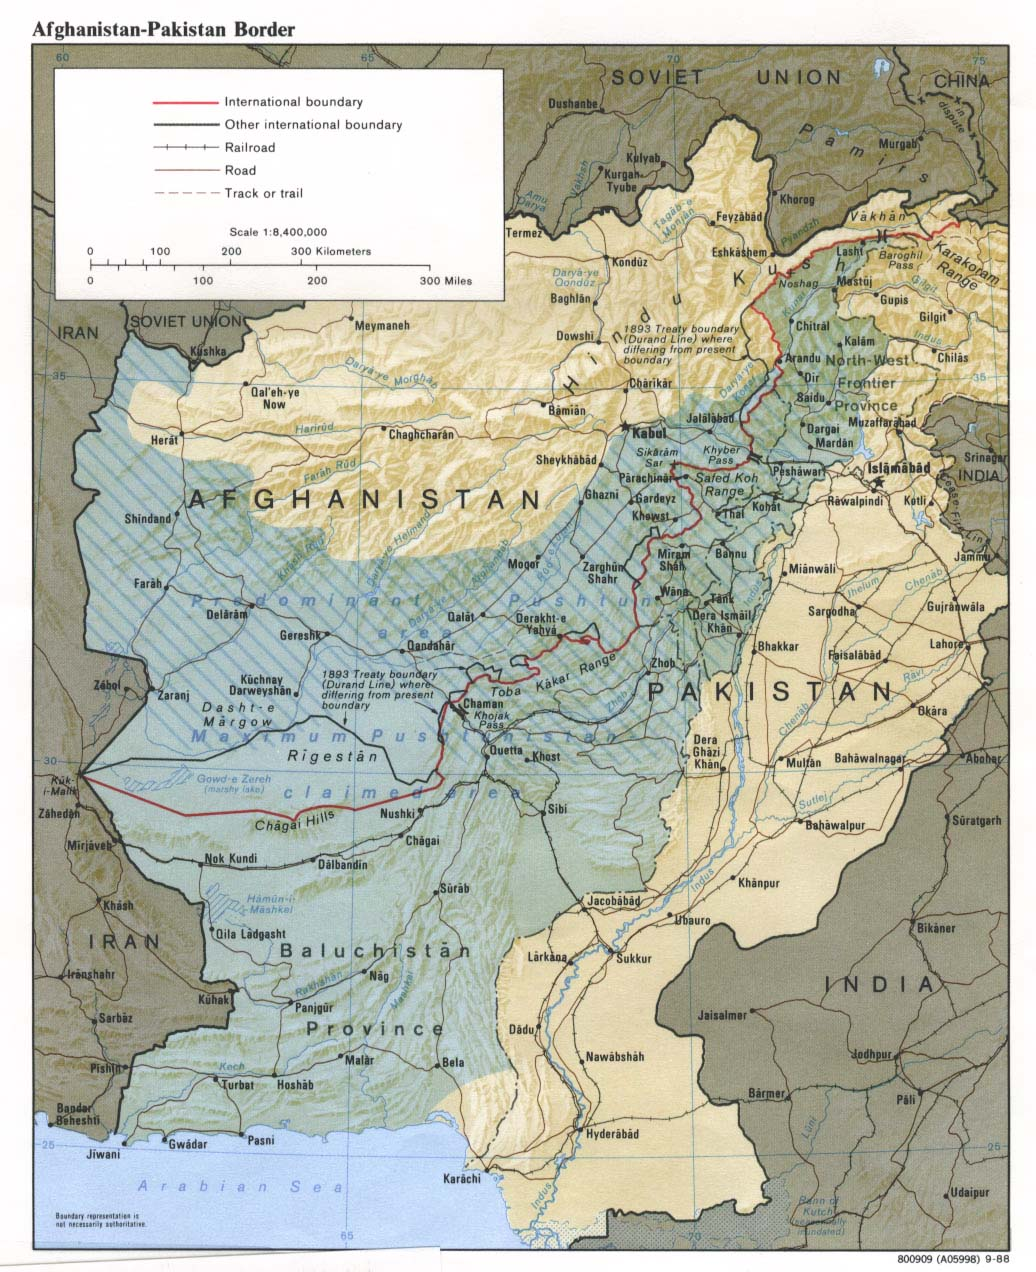 Baluch and Pashtun dispersion between Pakistan and Afghanistan